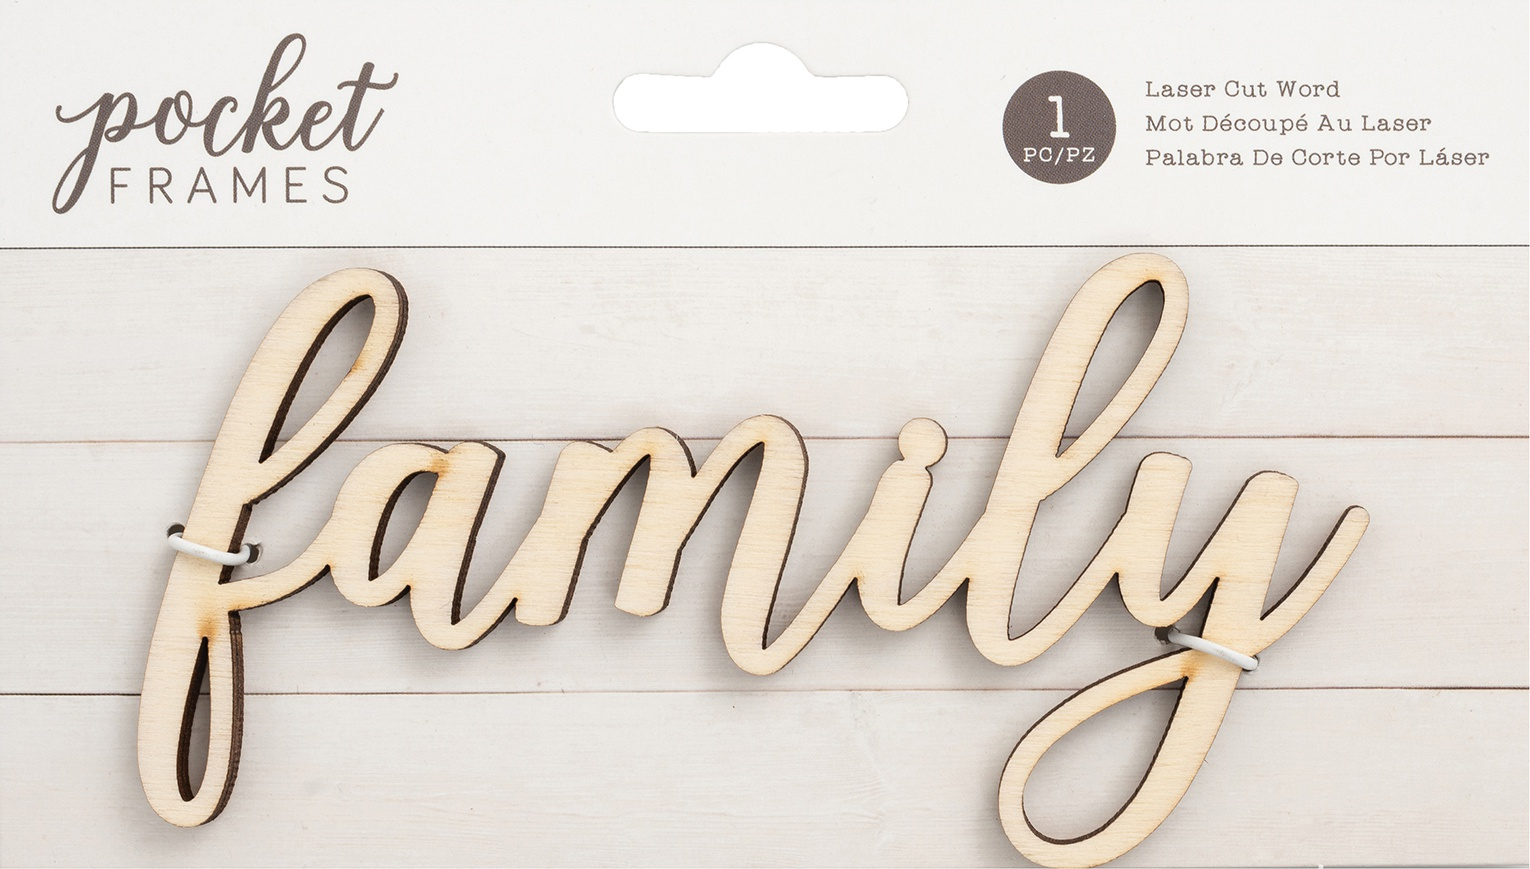 American Crafts Pocket Frames Laser Cut Words-Family